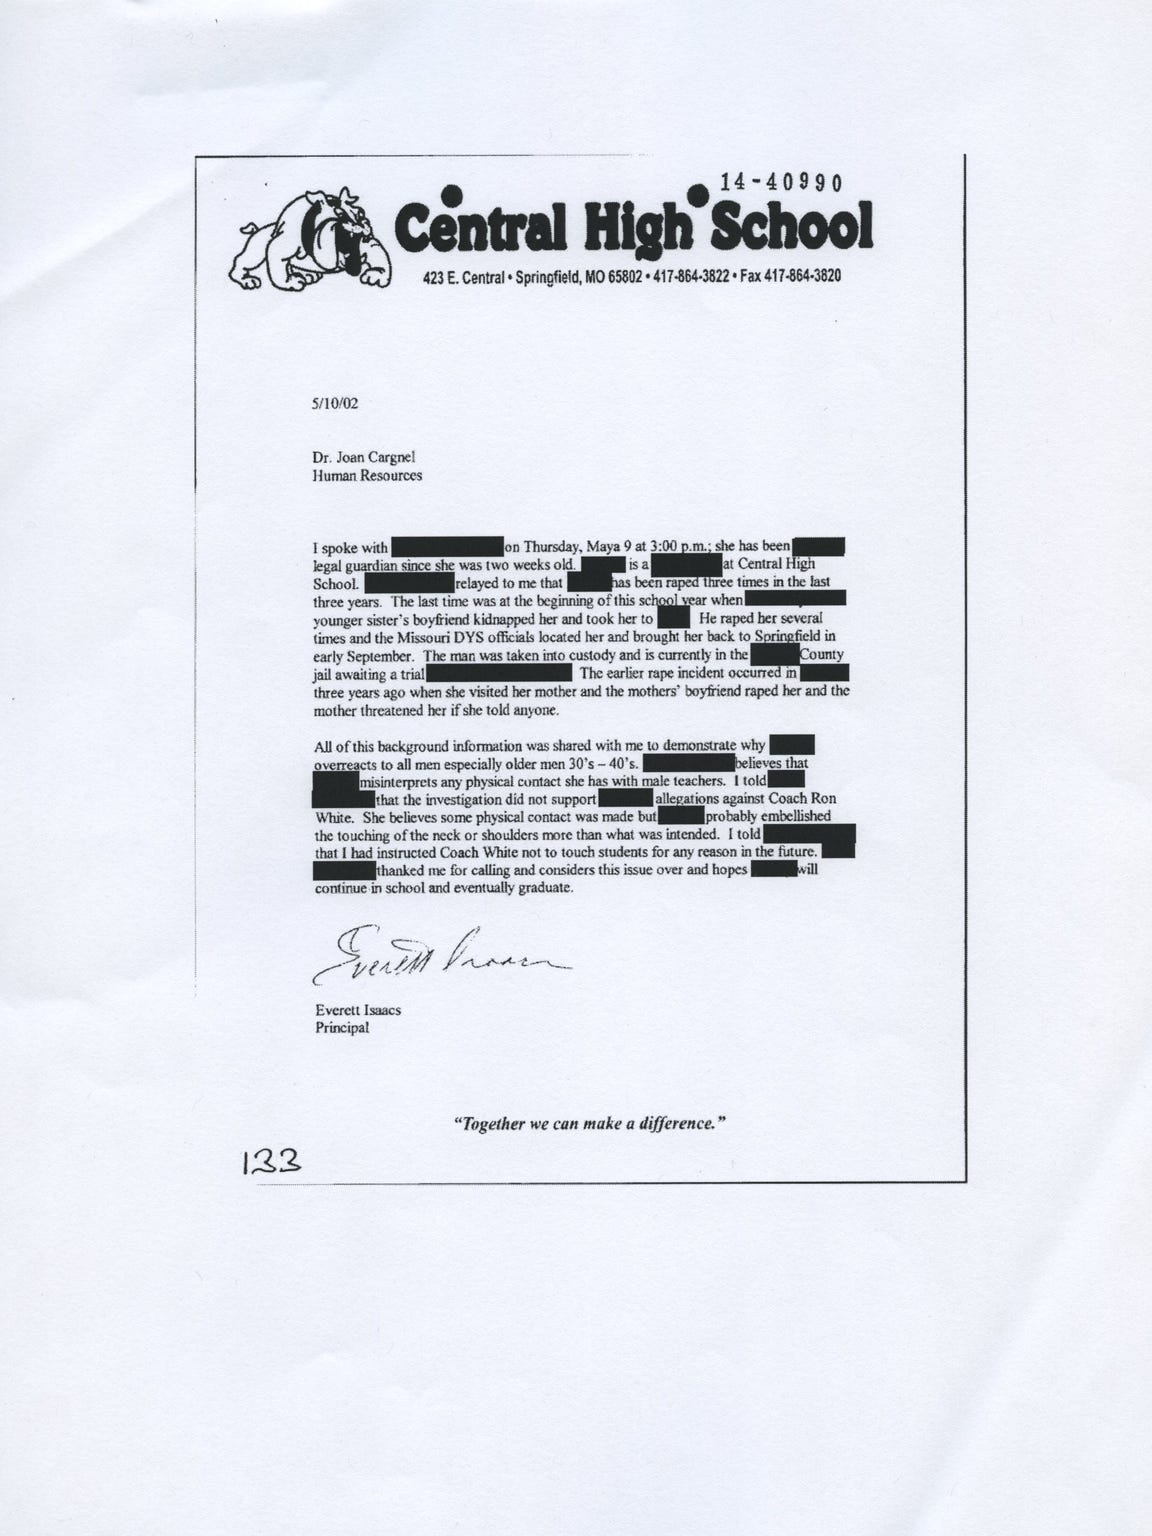 A document in the Ronnie White case turned over by